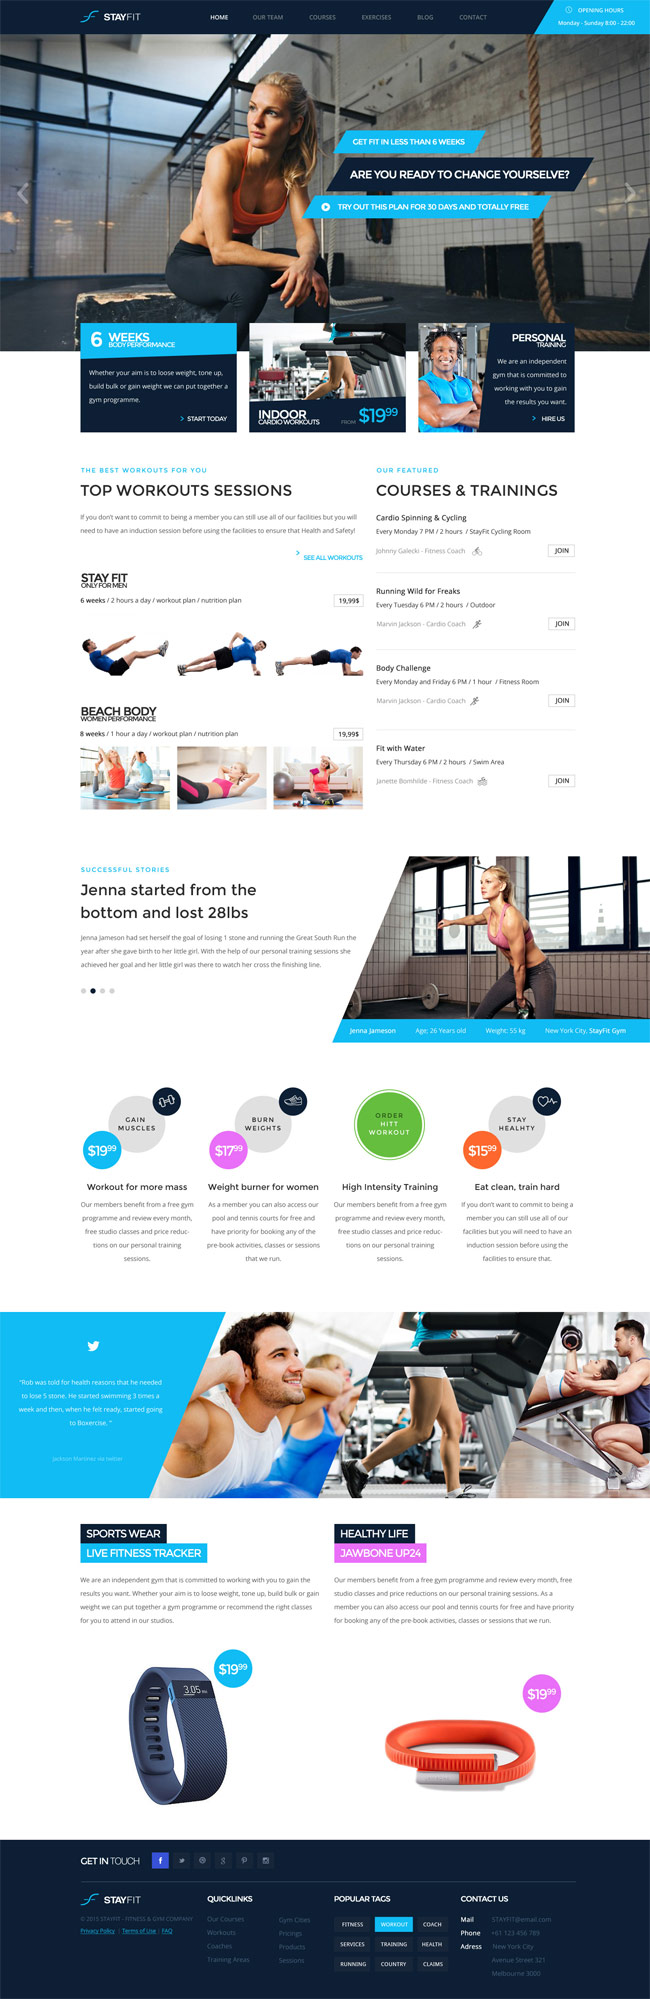 Stayfit-Sports-Health-Gym-Fitness-Wordpress-Theme